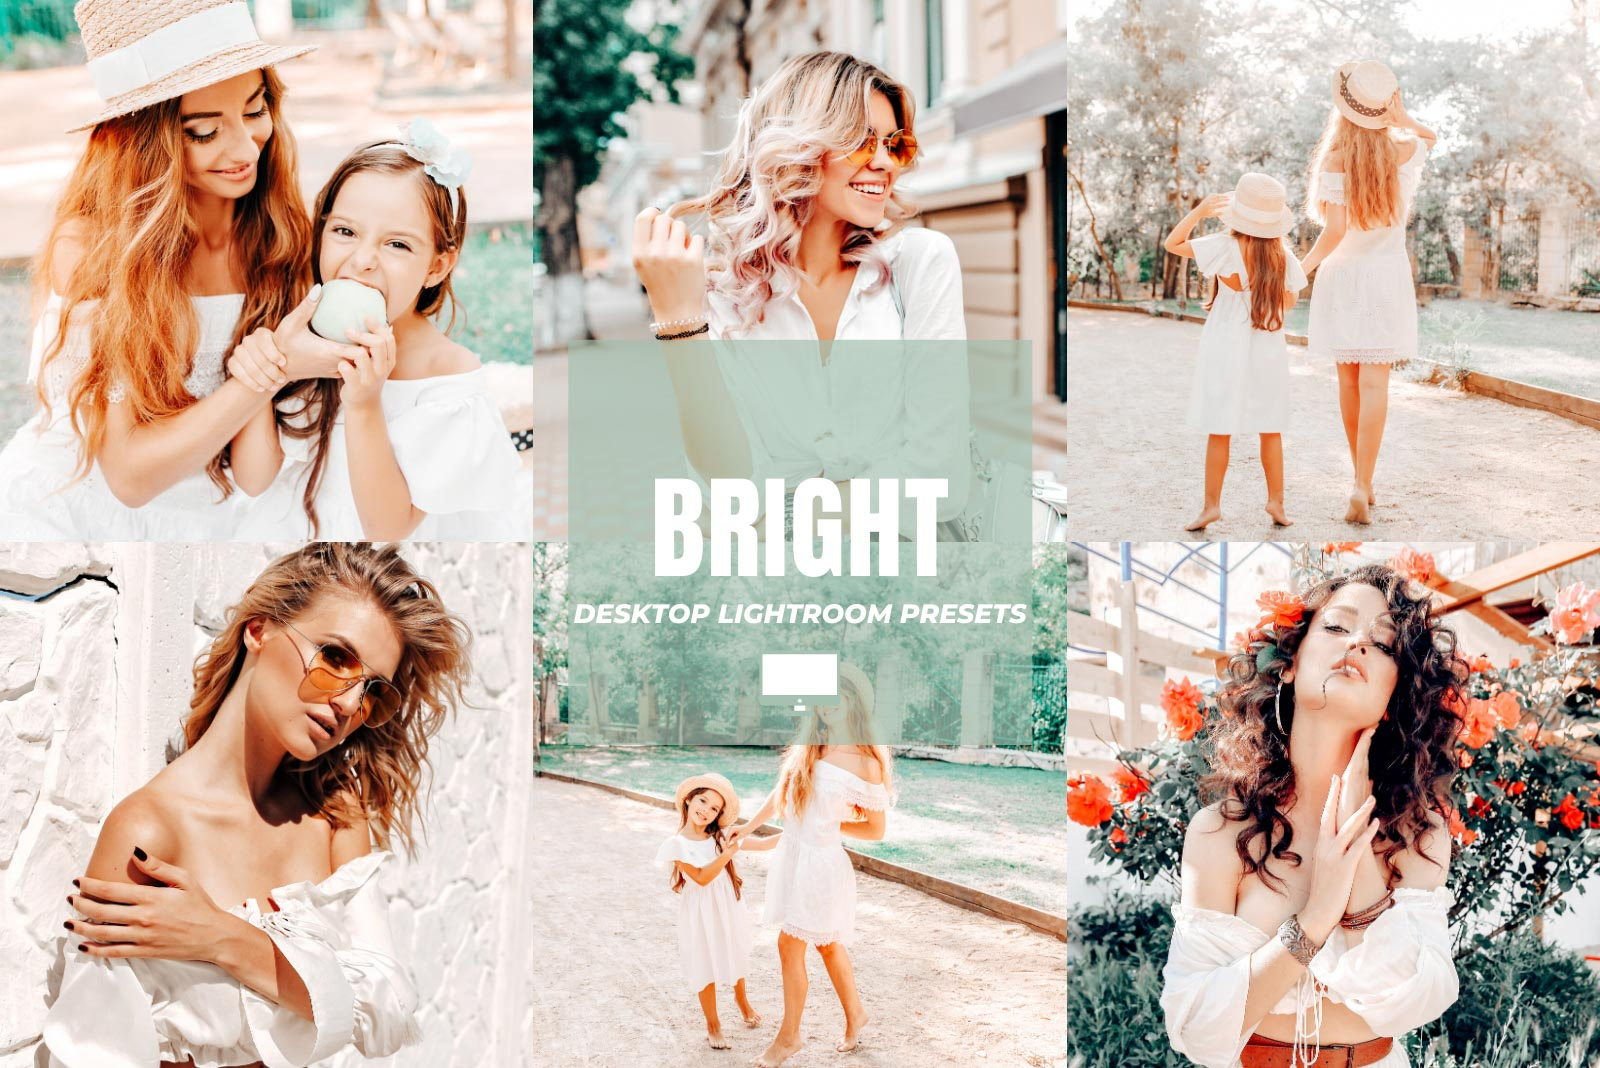 BRIGHT DESKTOP LIGHTROOM PRESETS